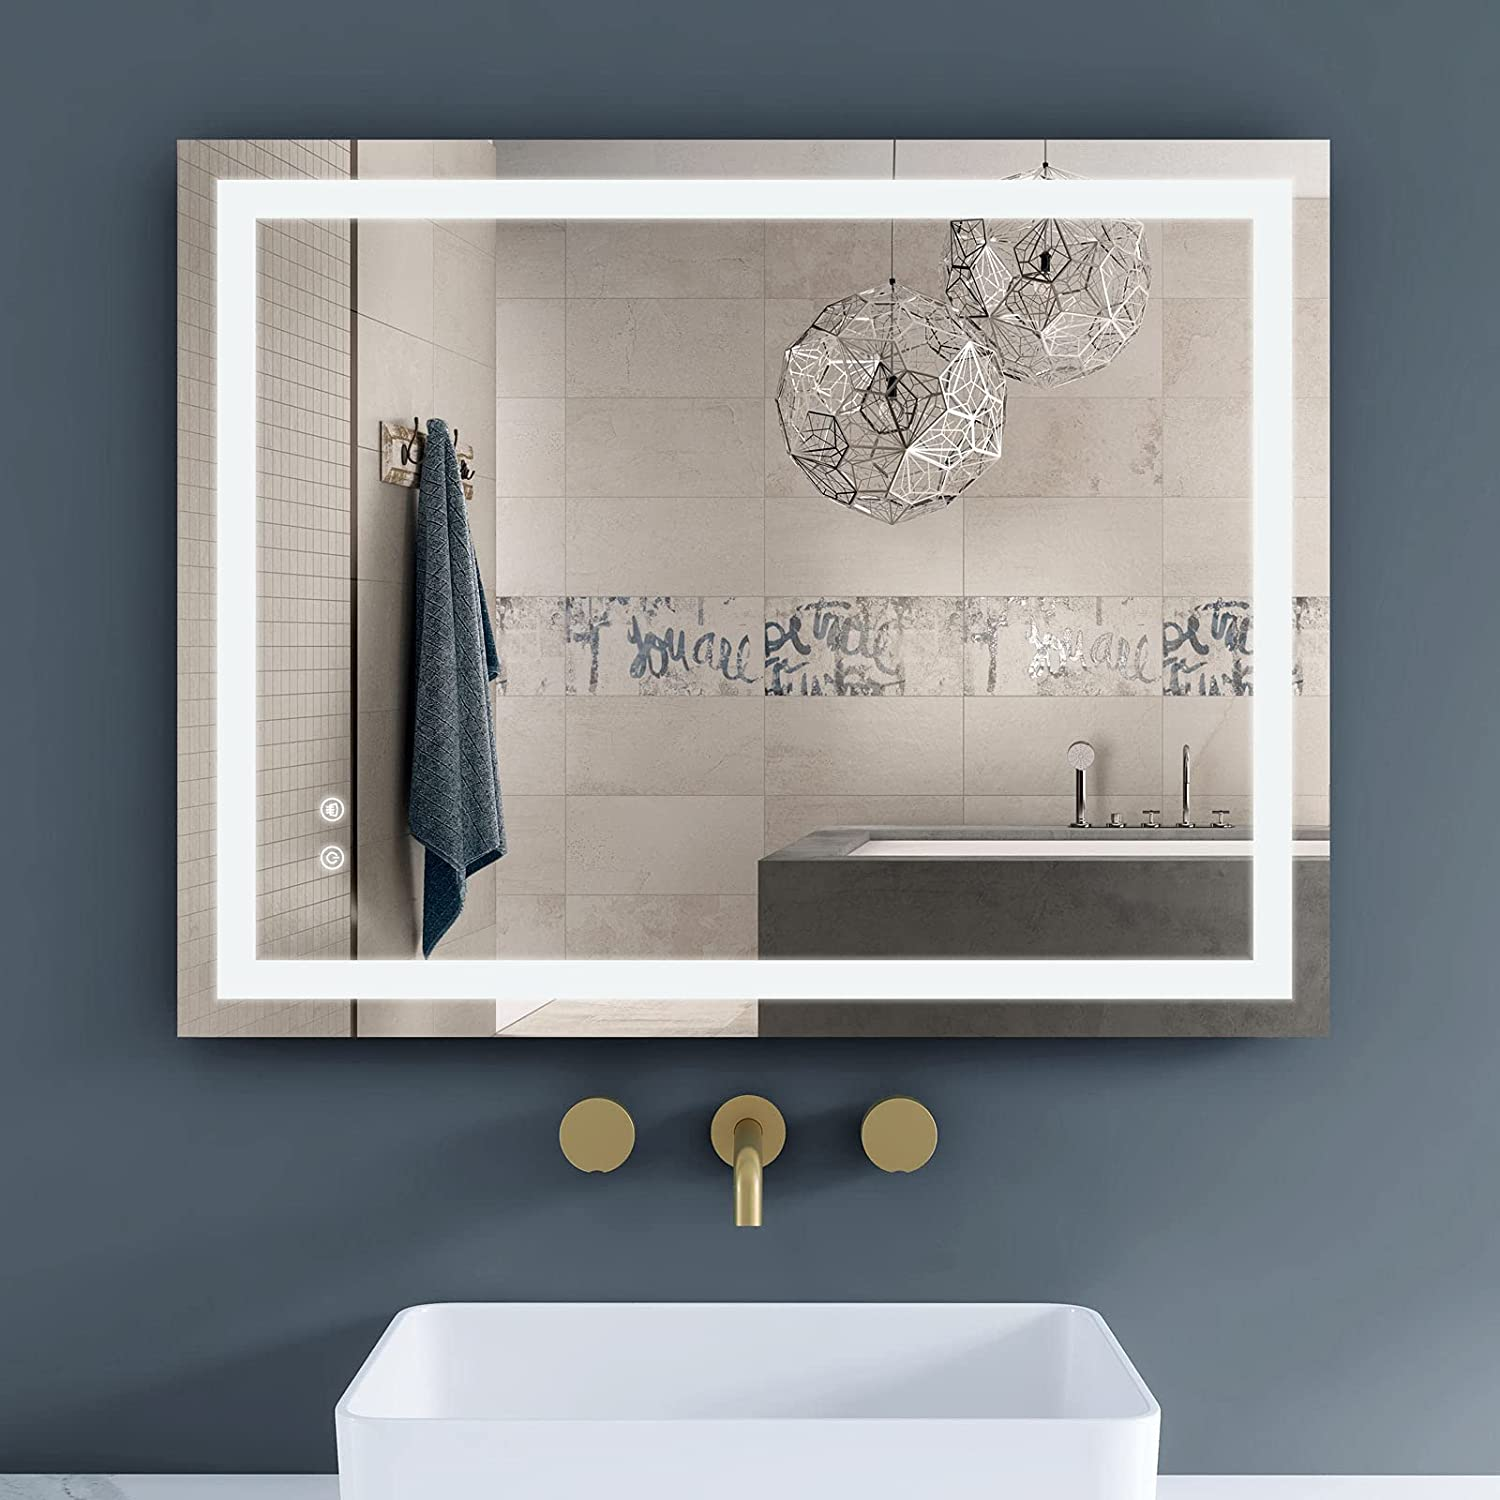 Buy Venetio 36 X 28 Inch Led Bathroom Mirror For Wall With Smart Touch Screen Anti Fog Dimmable Function Large Frameless Light Up Makeup Mirror For Vanity Ideal For Modern